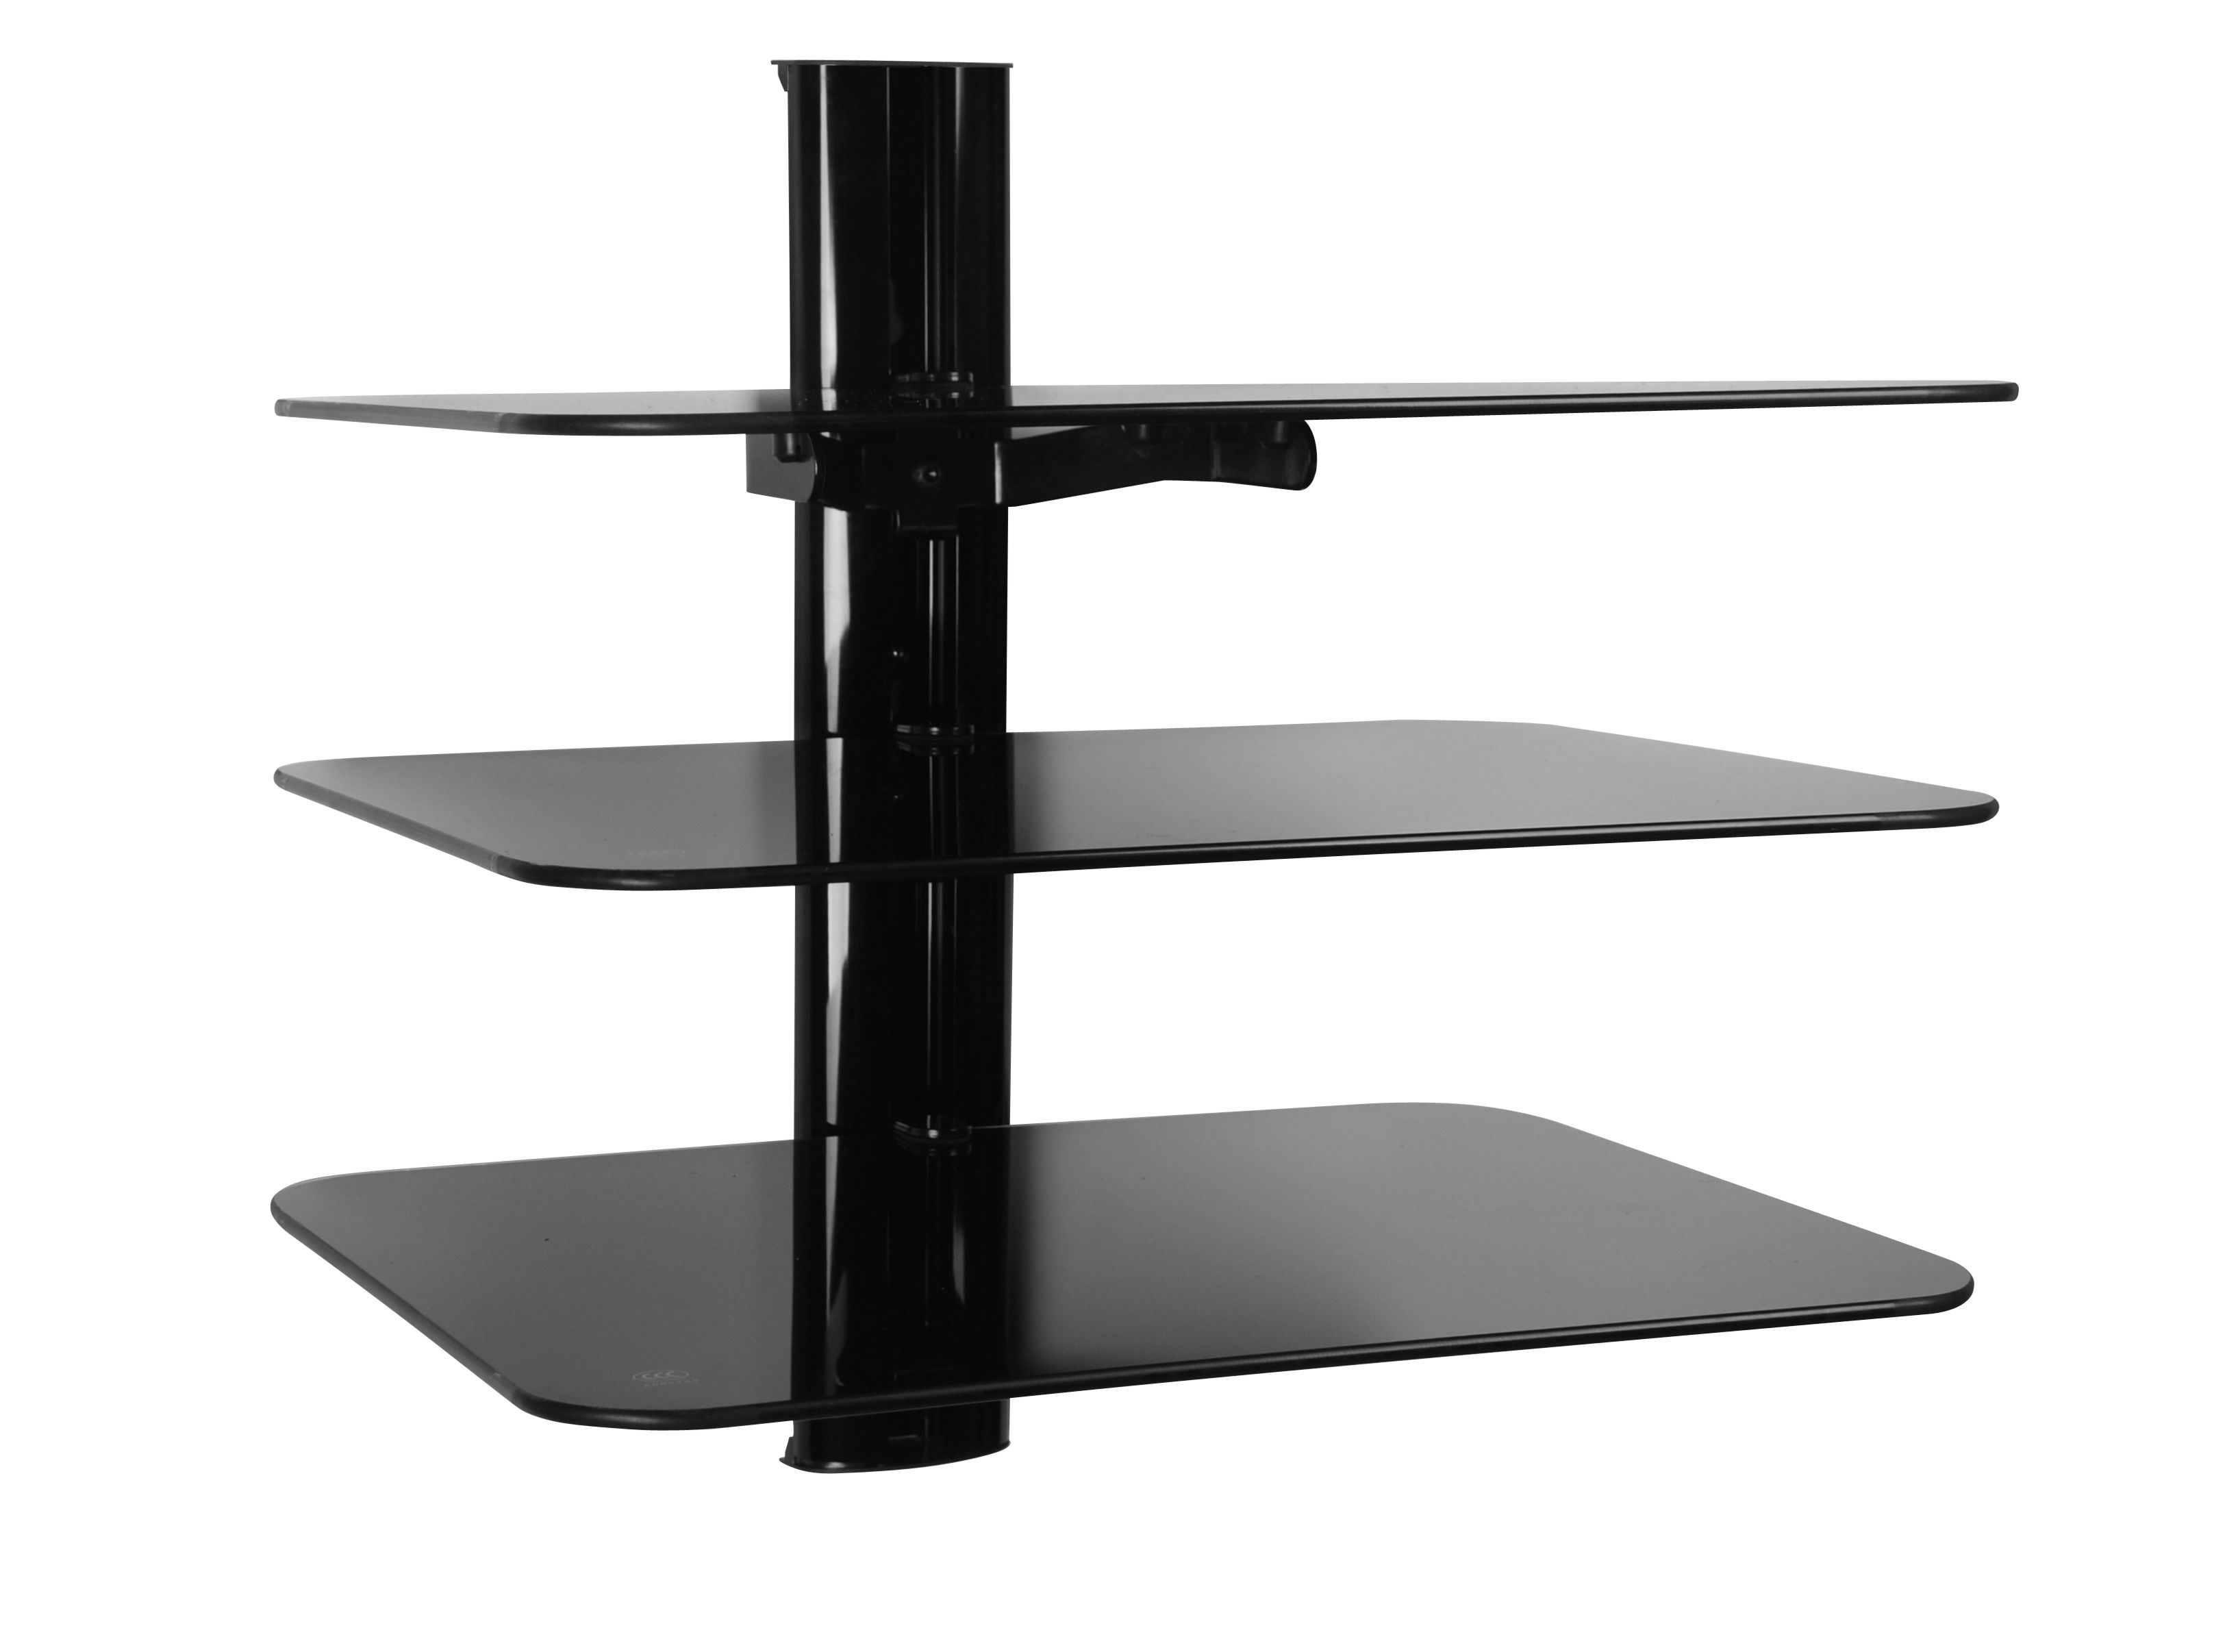 Triple Glass Av Shelving System Pertaining To Floating Black Glass Shelf (View 4 of 15)